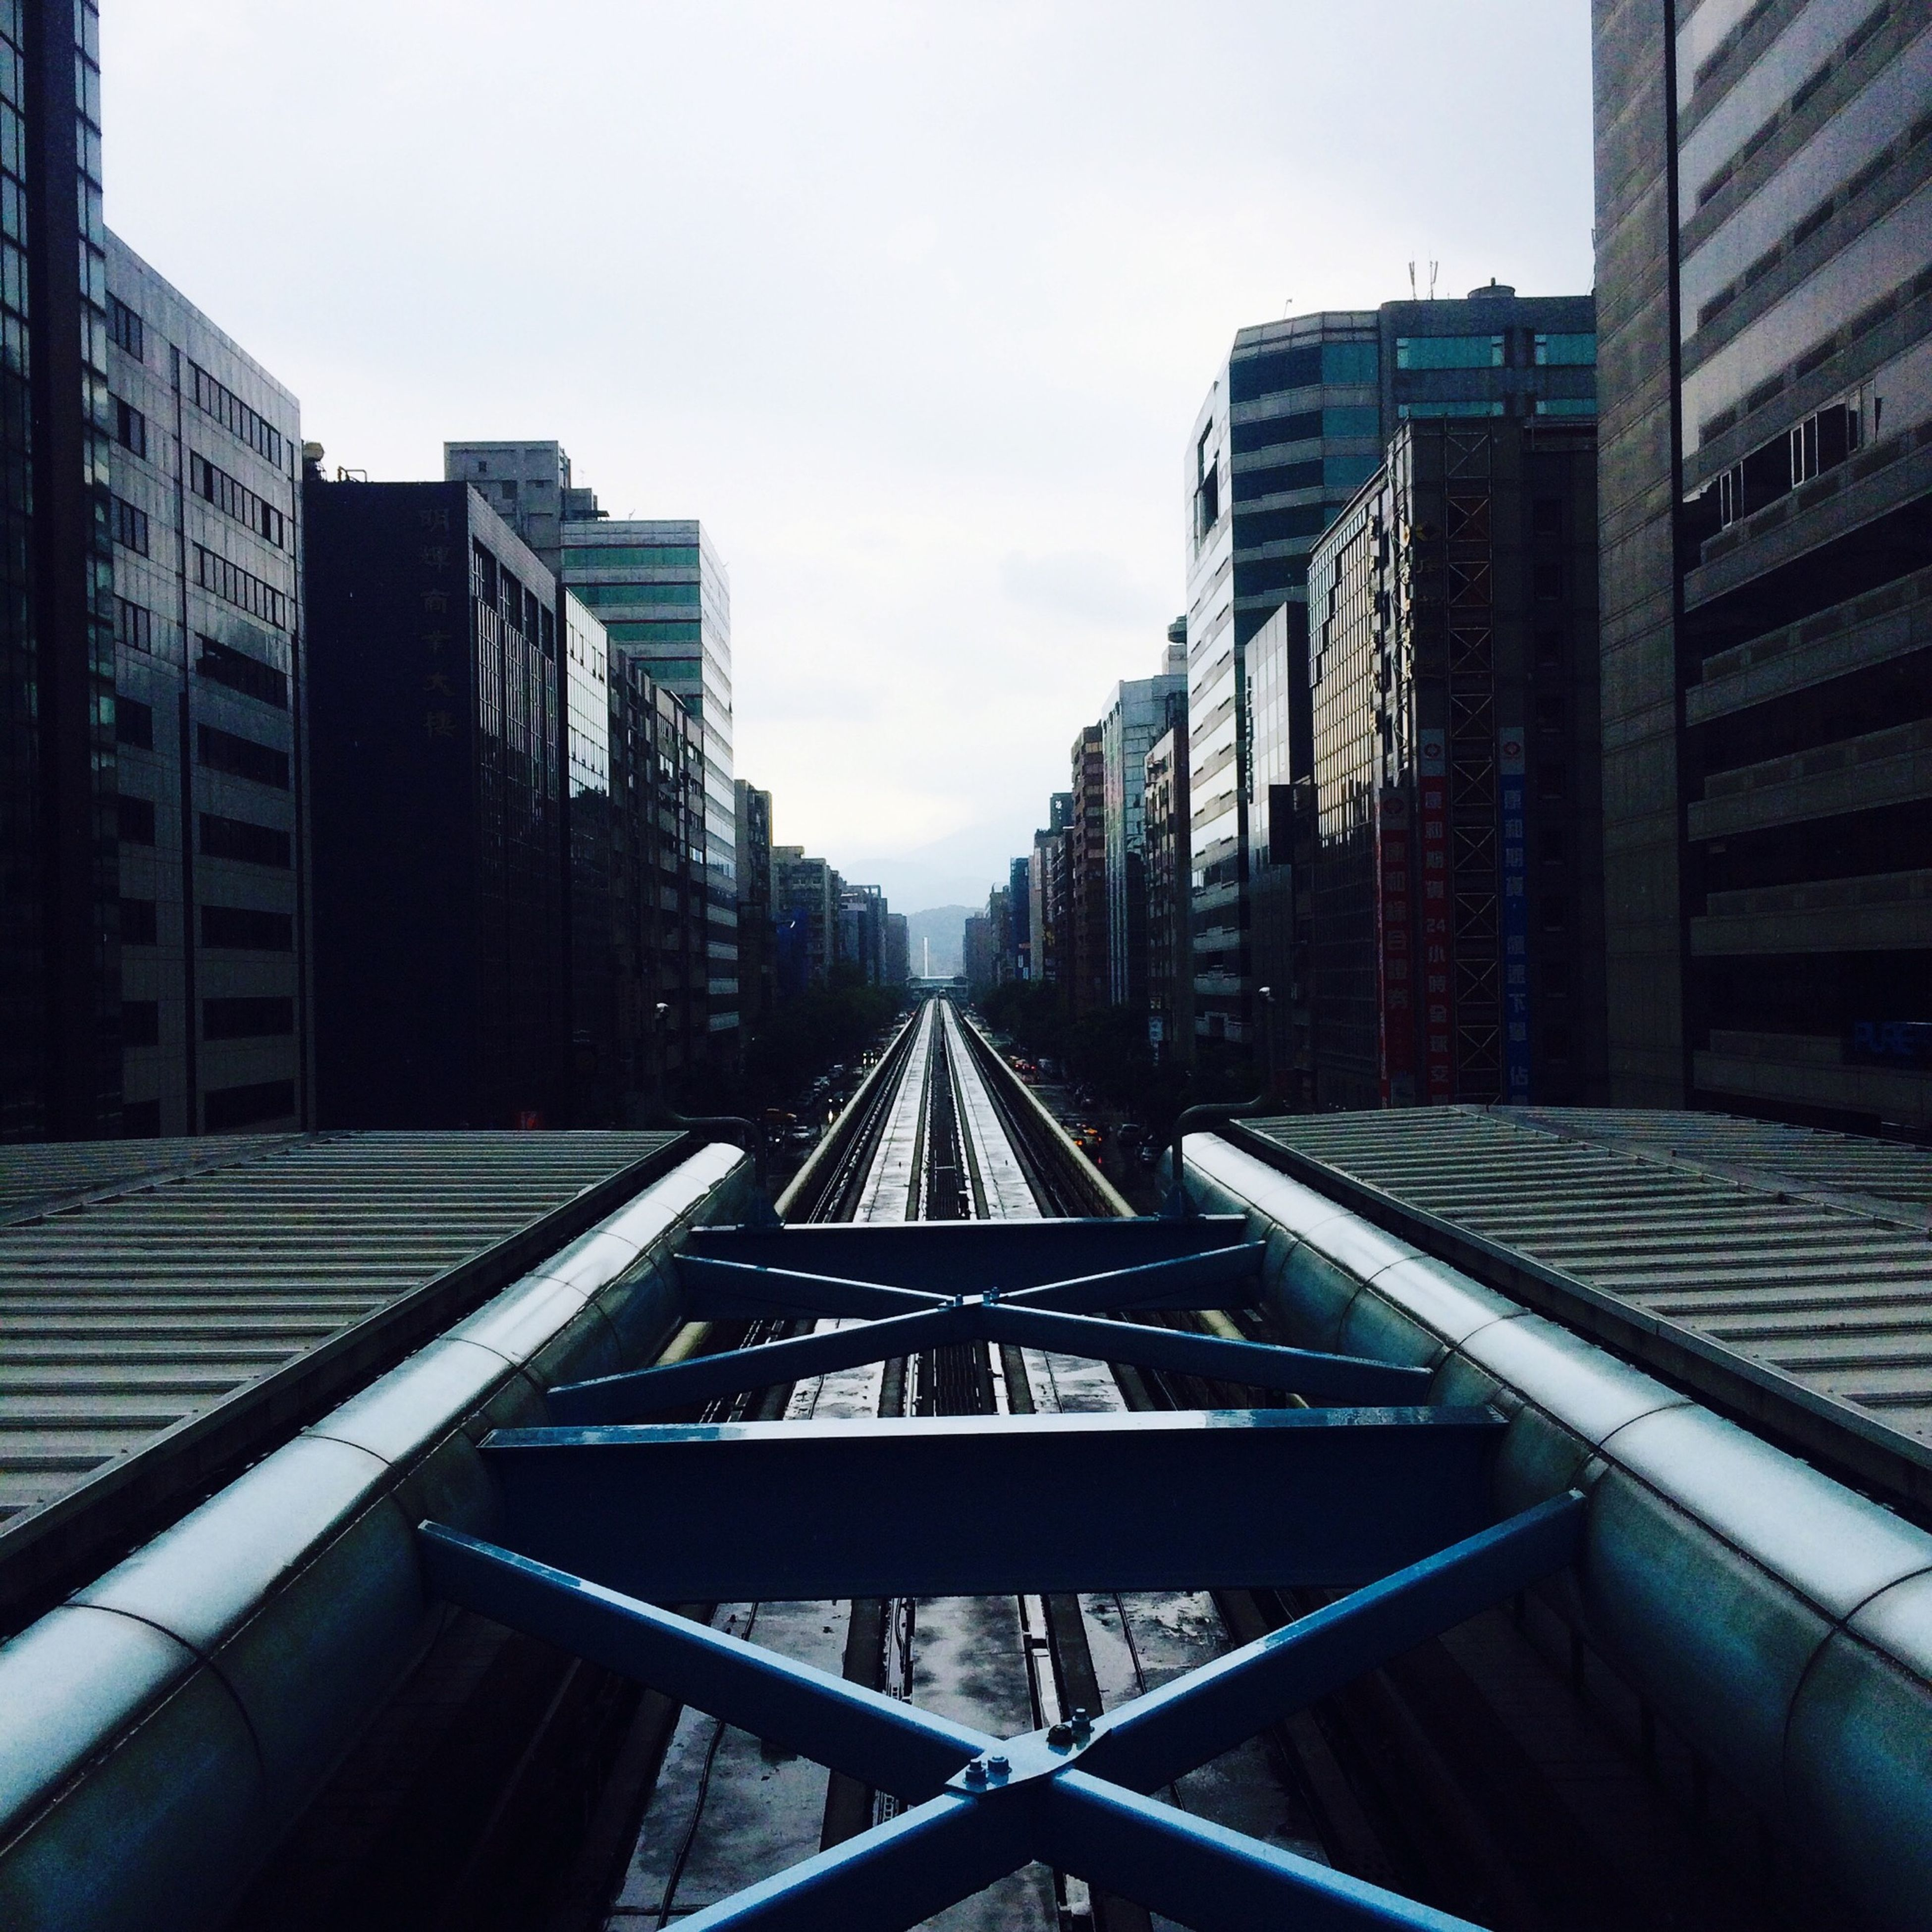 architecture, built structure, railroad track, the way forward, diminishing perspective, building exterior, vanishing point, rail transportation, transportation, sky, city, public transportation, day, outdoors, no people, railroad station, railway track, connection, building, long